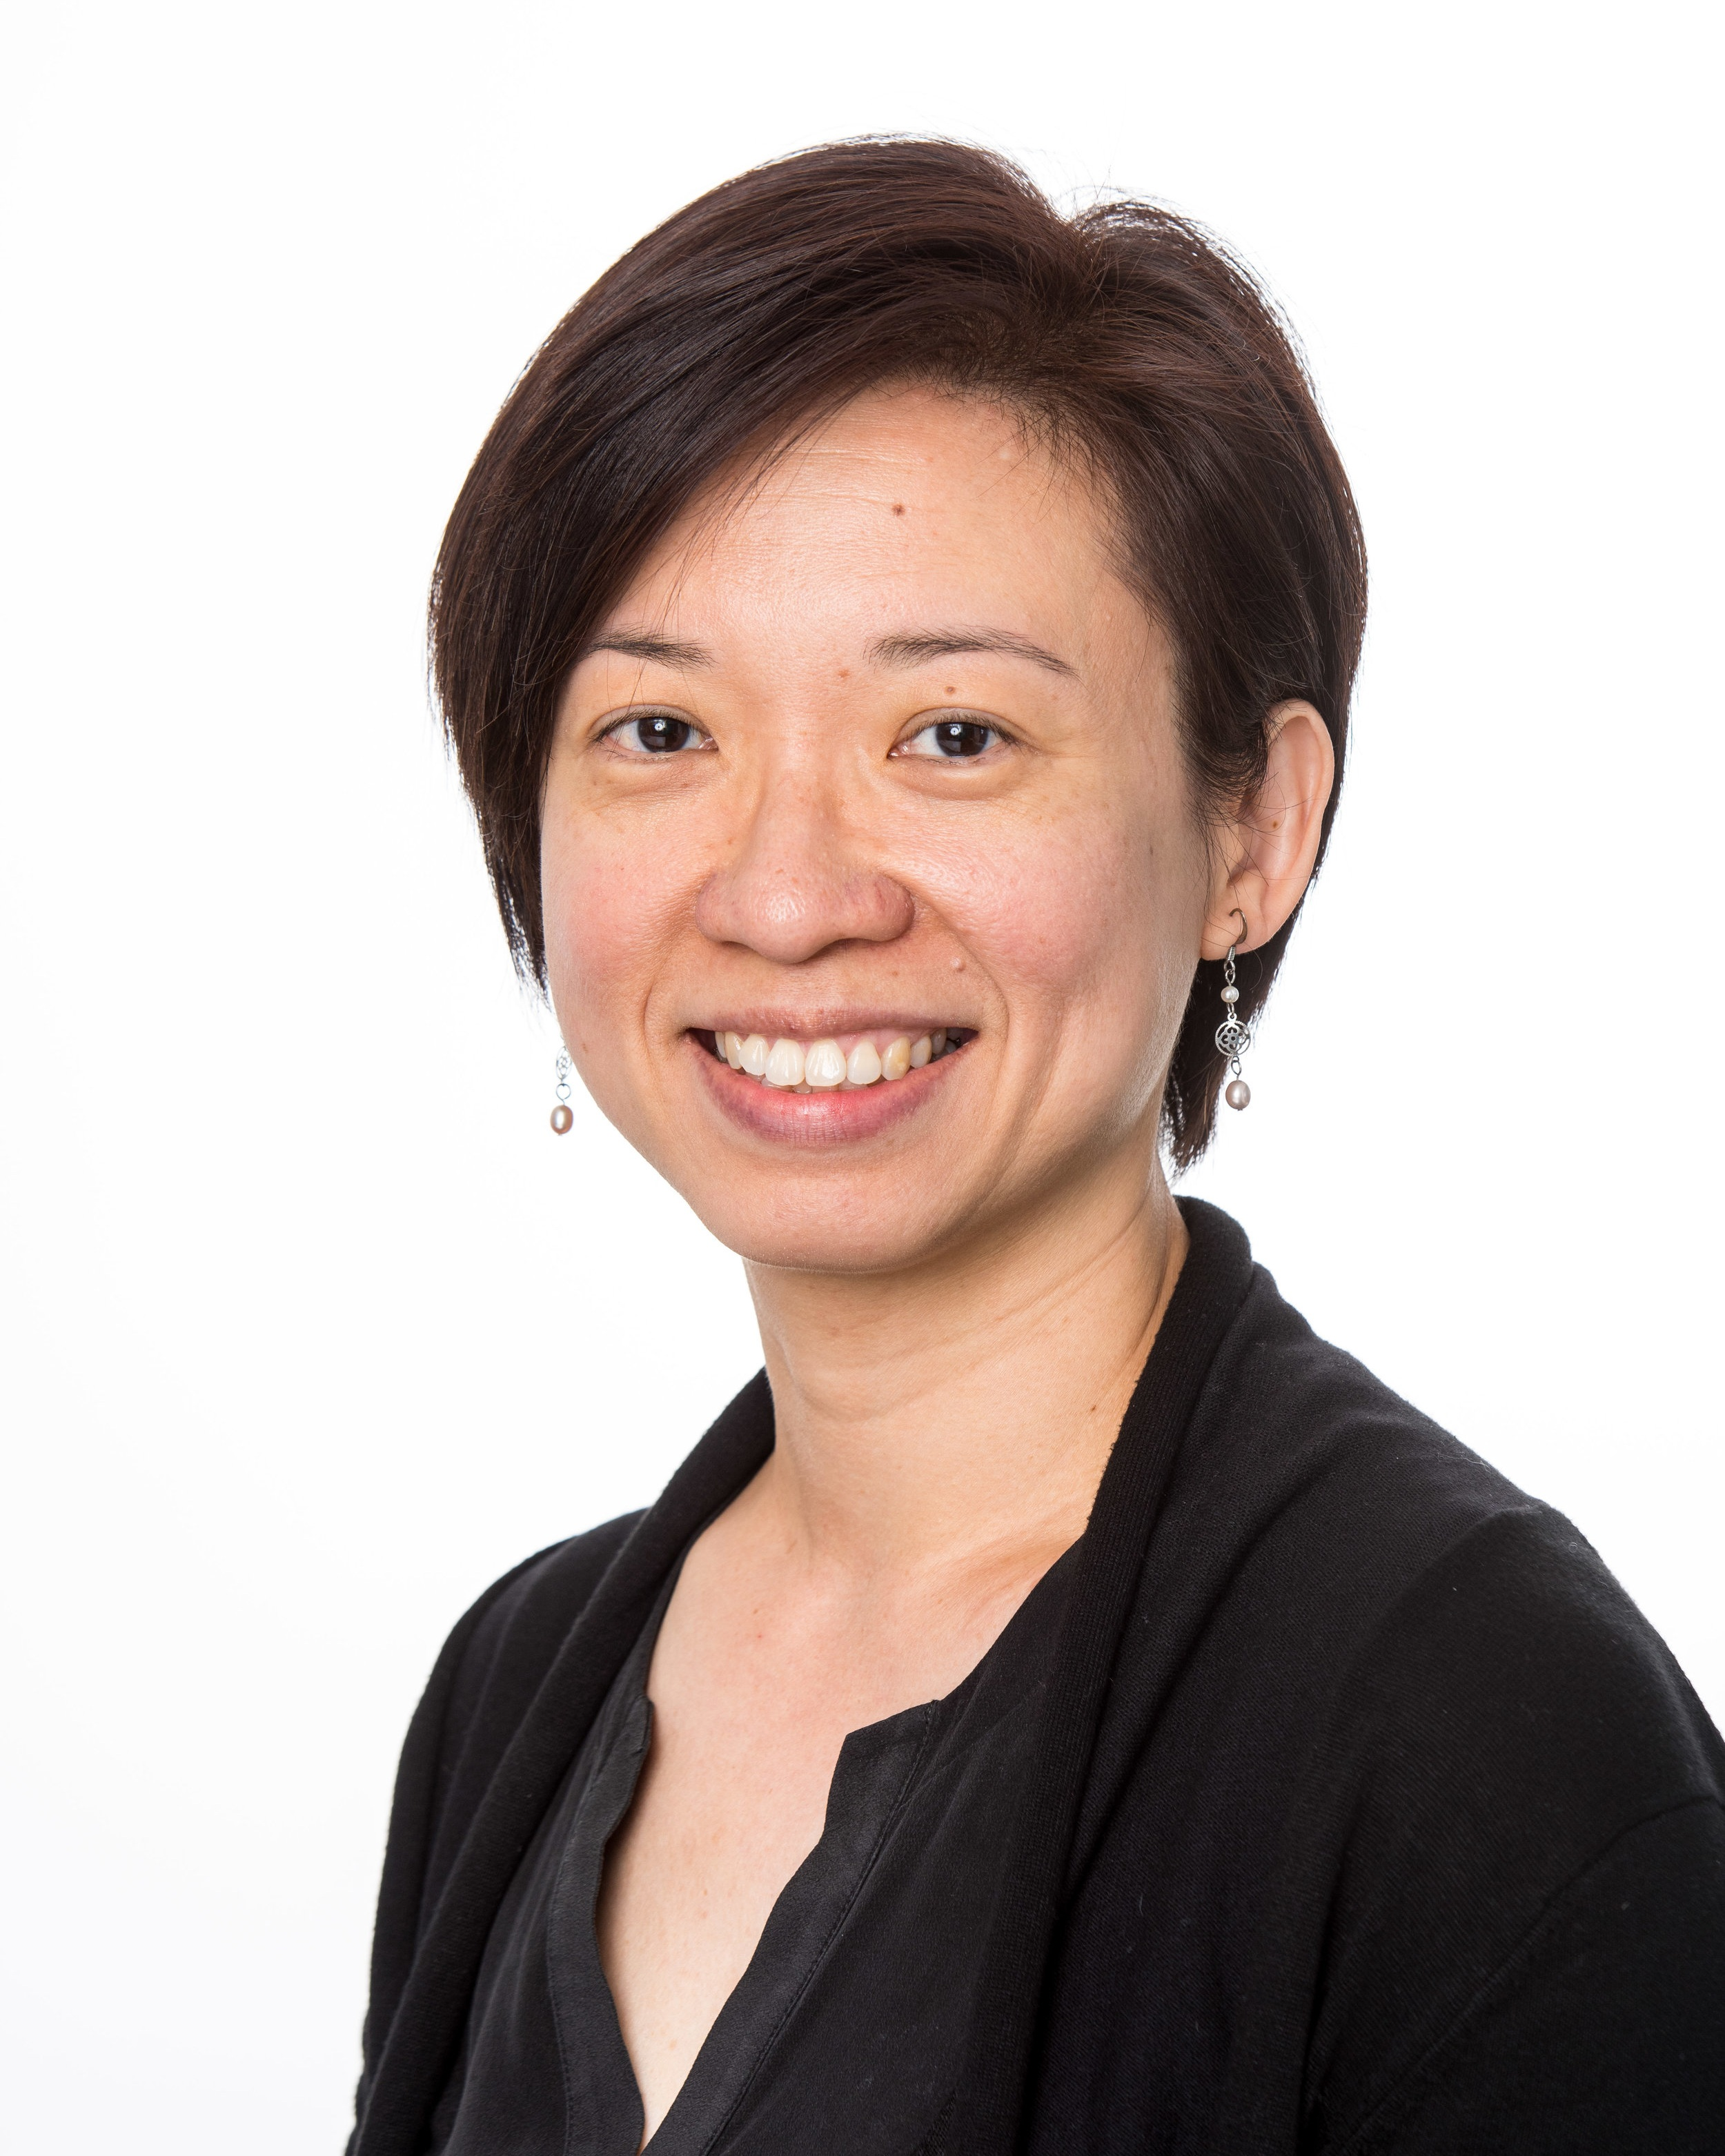 Aileen Koh - Mosaic Board MemberGovernance Sub-Committee MemberAileen joined Mosaic as a Board Member in December 2018 and is also a member of the Mosaic's Governance Sub-Committee.Aileen has over 20 years' experience in governance, risk and compliance management, and was a practising solicitor in Malaysia prior to relocating to Australia nearly 19 years ago.Aileen is currently Head of Governance and Company Secretary at Tasplan Superannuation Fund and is passionate about driving good governance practices in organisations. Aileen holds a Bachelor of Laws (Hons) and is a Graduate of the Australian Institute of Company Directors and an Associate of the GRC Institute.